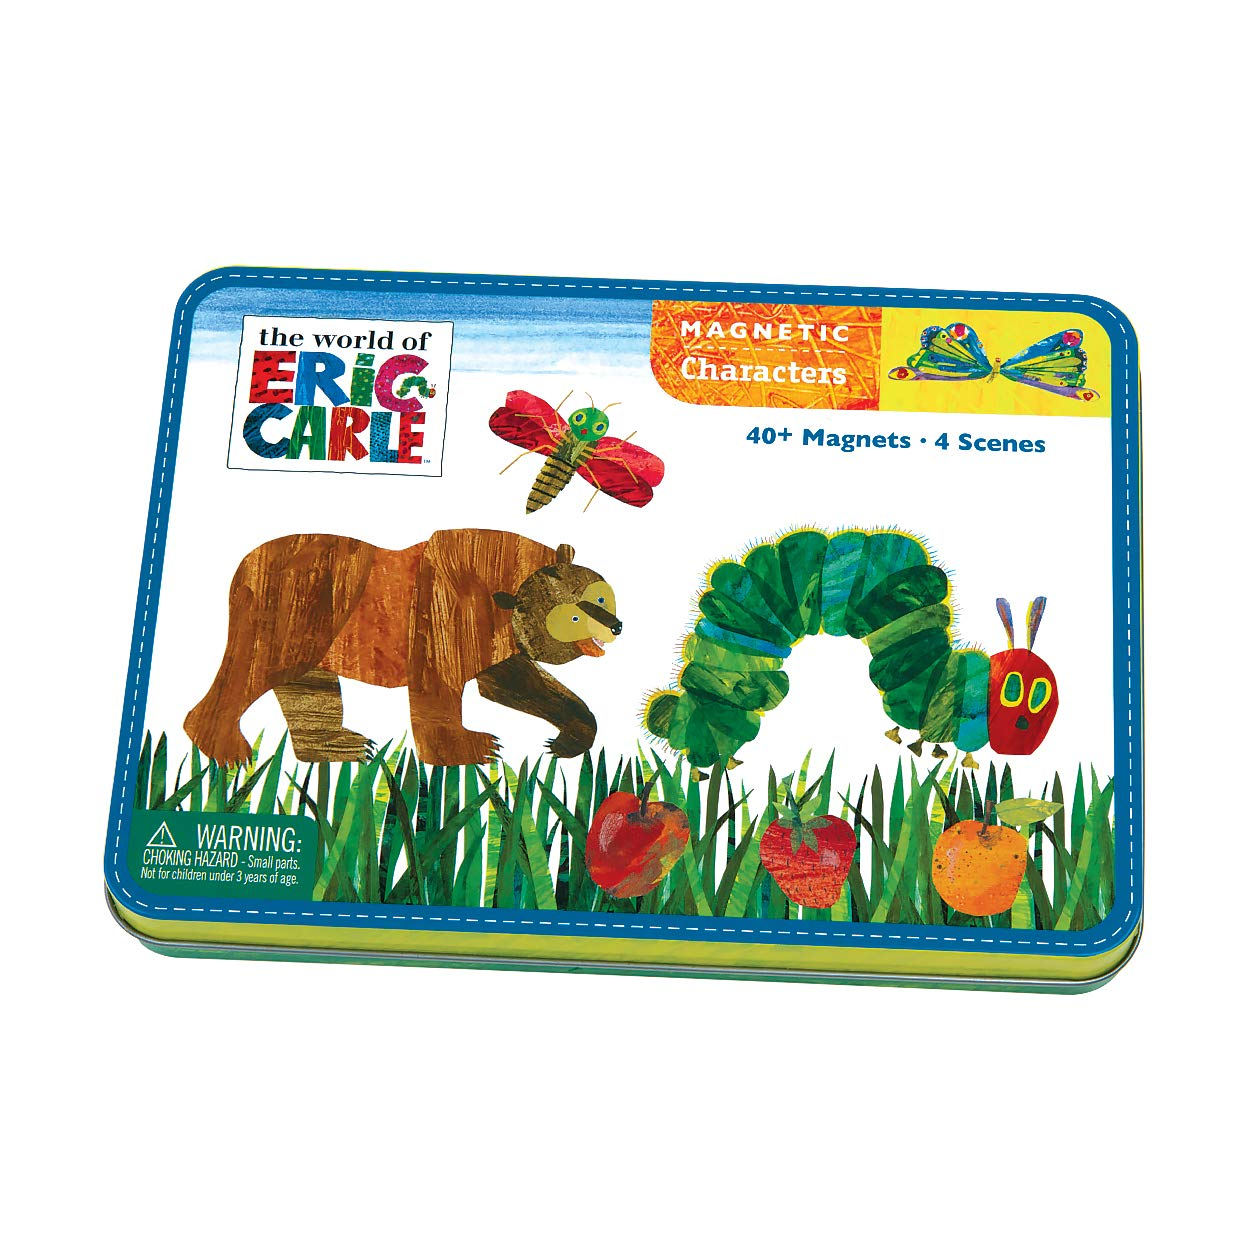 Mudpuppy Eric Carle The Very Hungry Caterpillar and Friends Magnetic Character Set- Ages 3+ - Magnetic Play Set with 4 Scenes, 40+ Magnets - Great for Travel, Quiet Time-Magnets Adhere to Tin Package by Mudpuppy